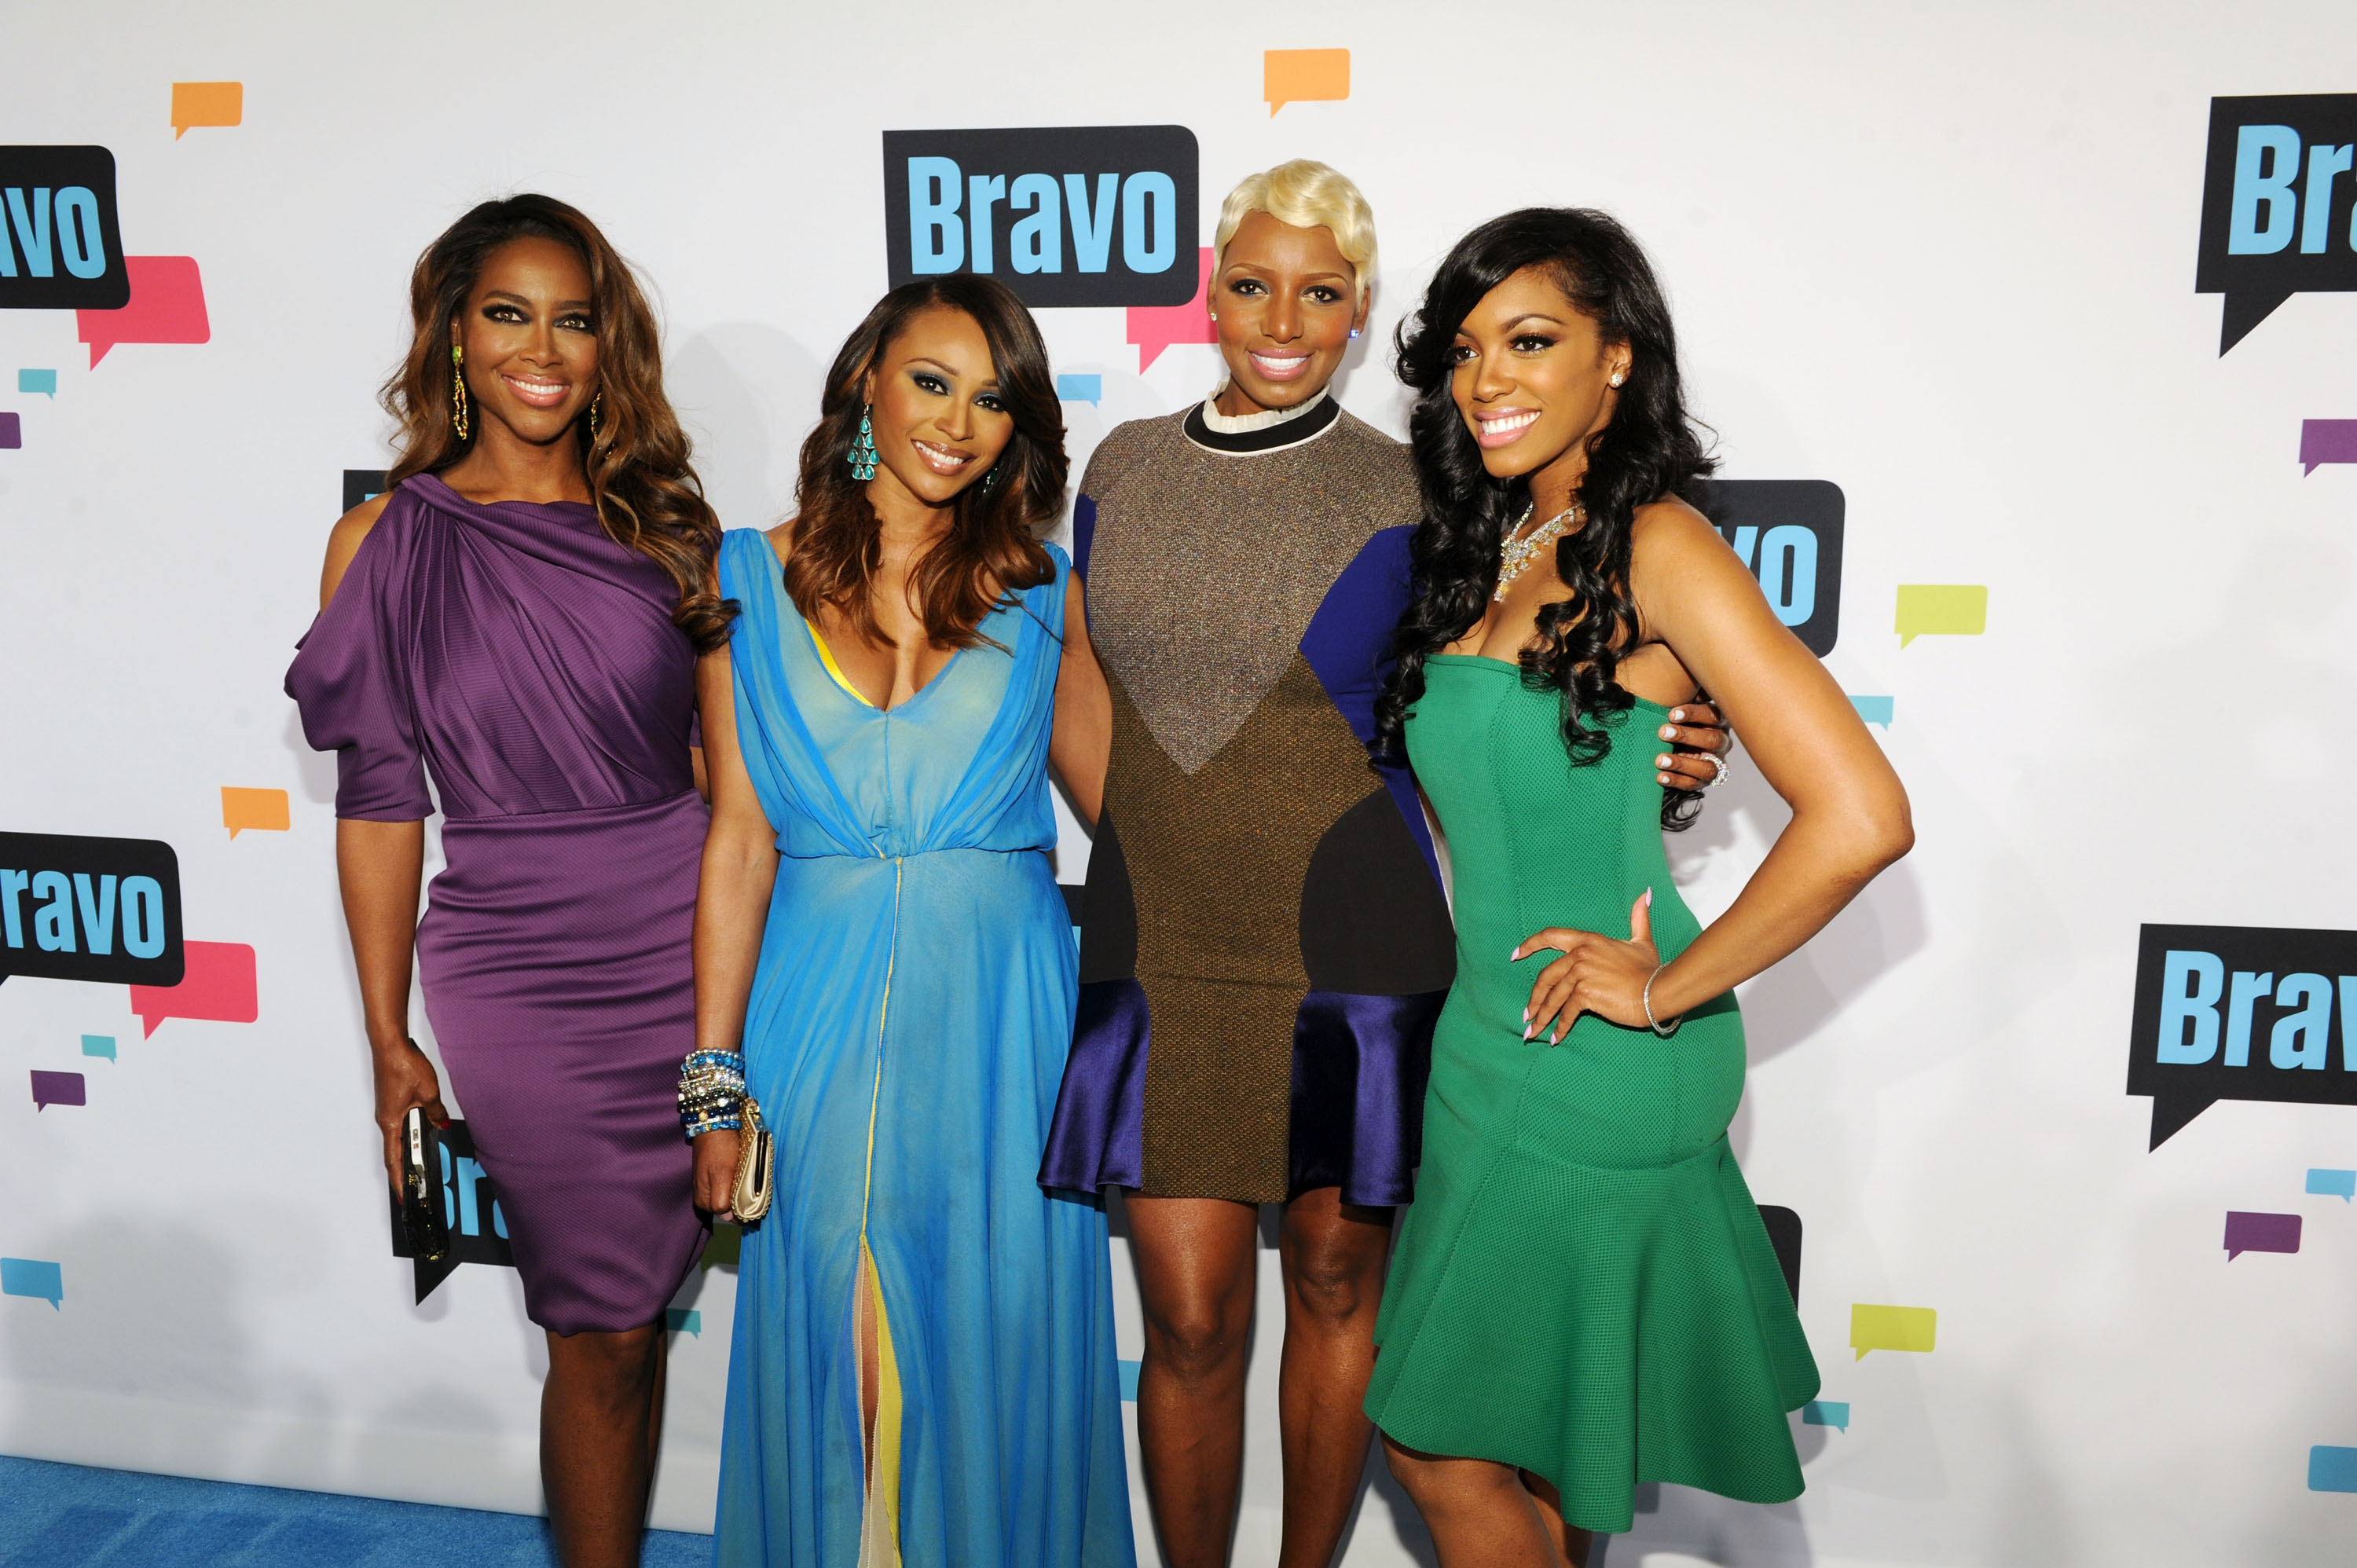 Rhoa season 6 intro lines for dating